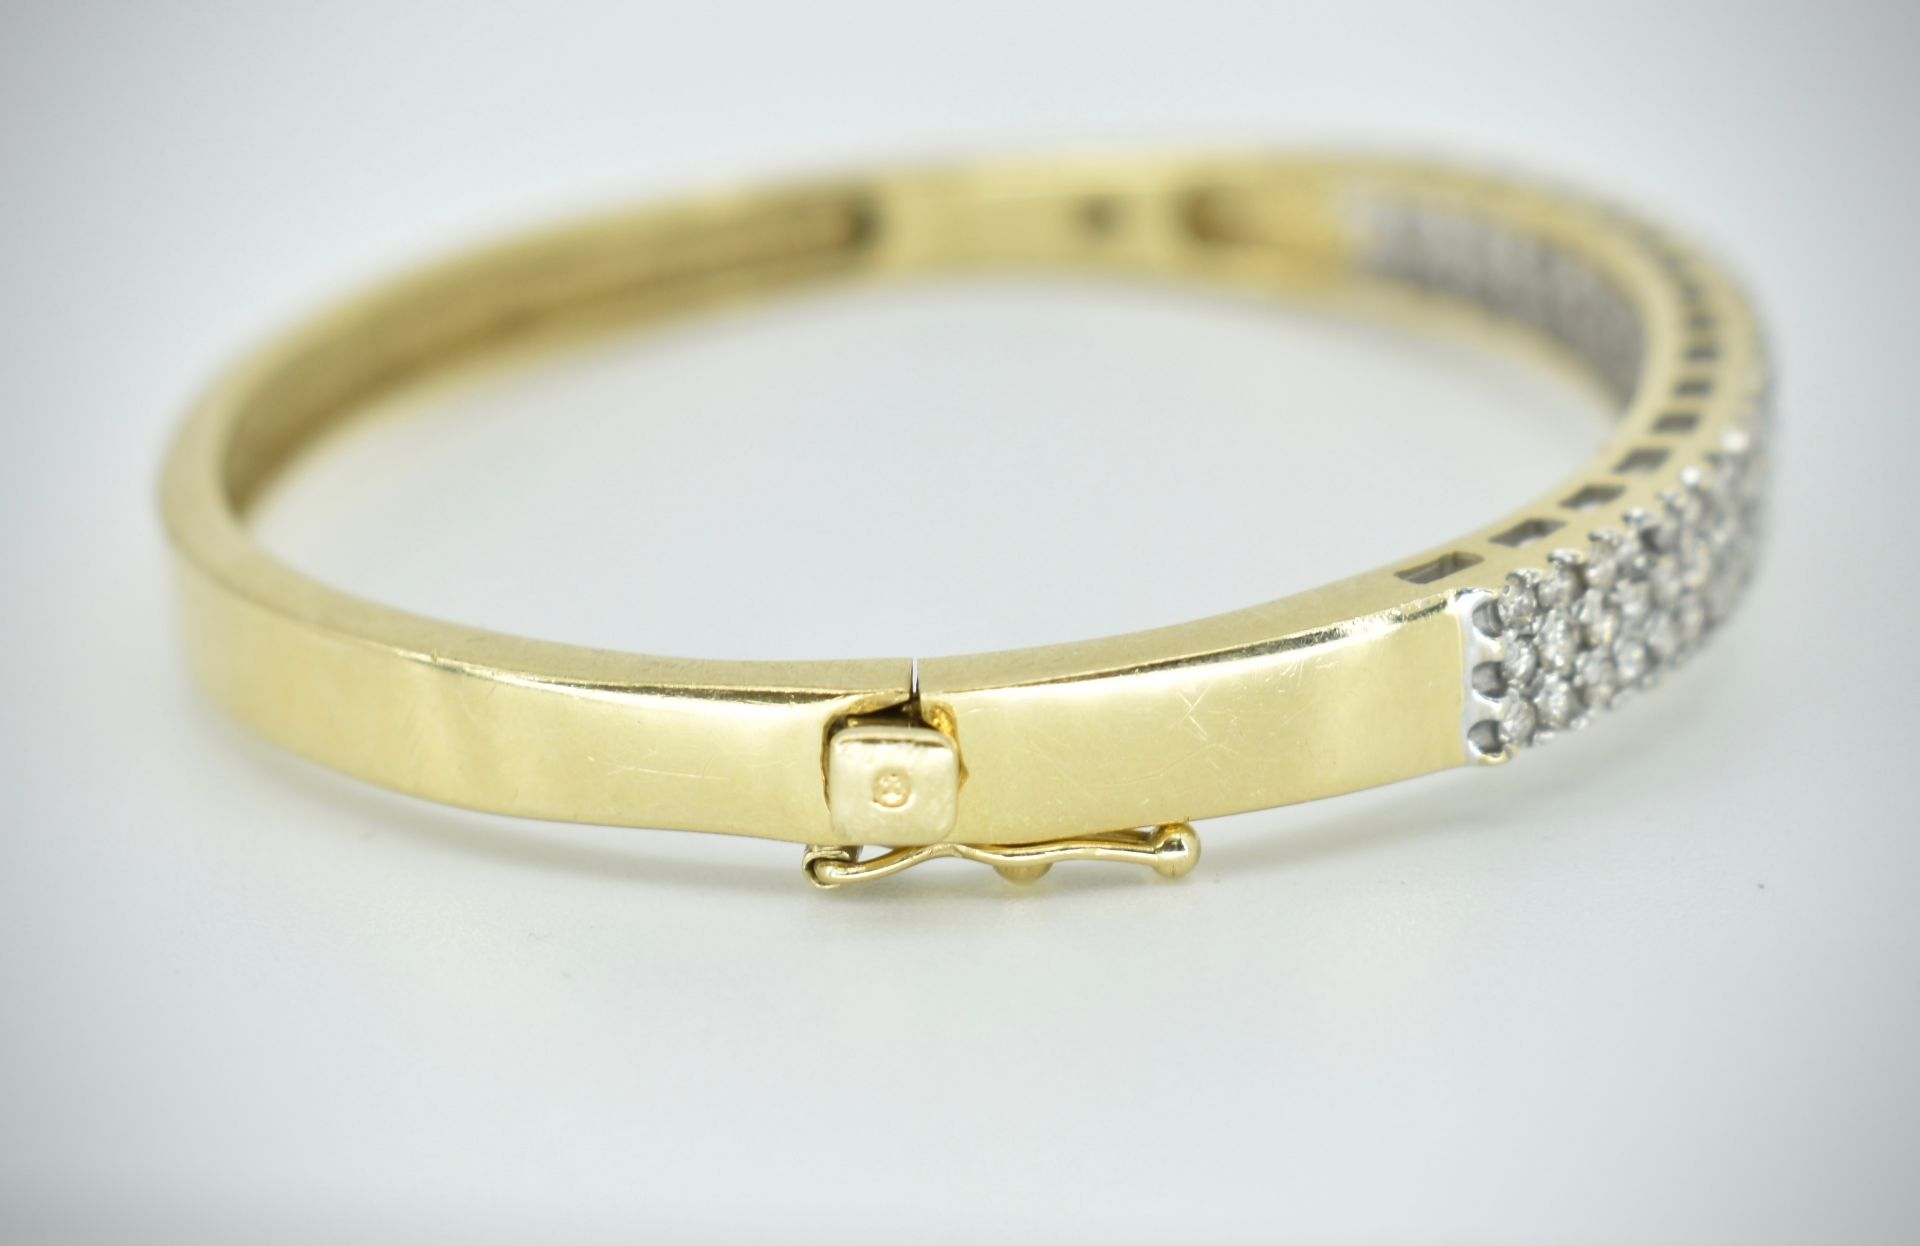 A 14ct Gold & Diamond Pave Fronted Bracelet - Bangle - Image 6 of 7